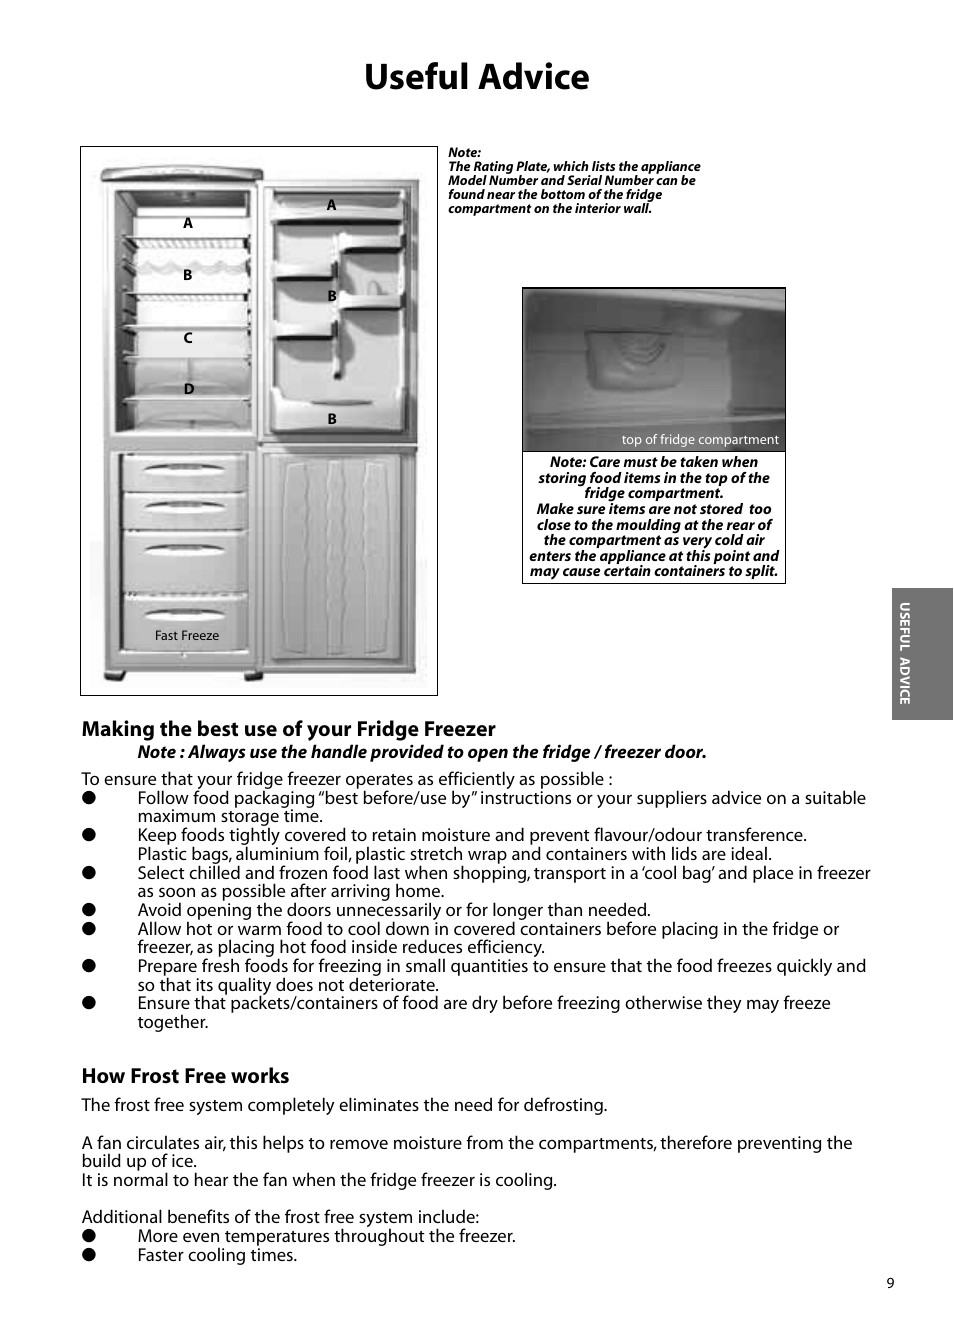 Useful advice, Making the best use of your fridge freezer, How frost free  works